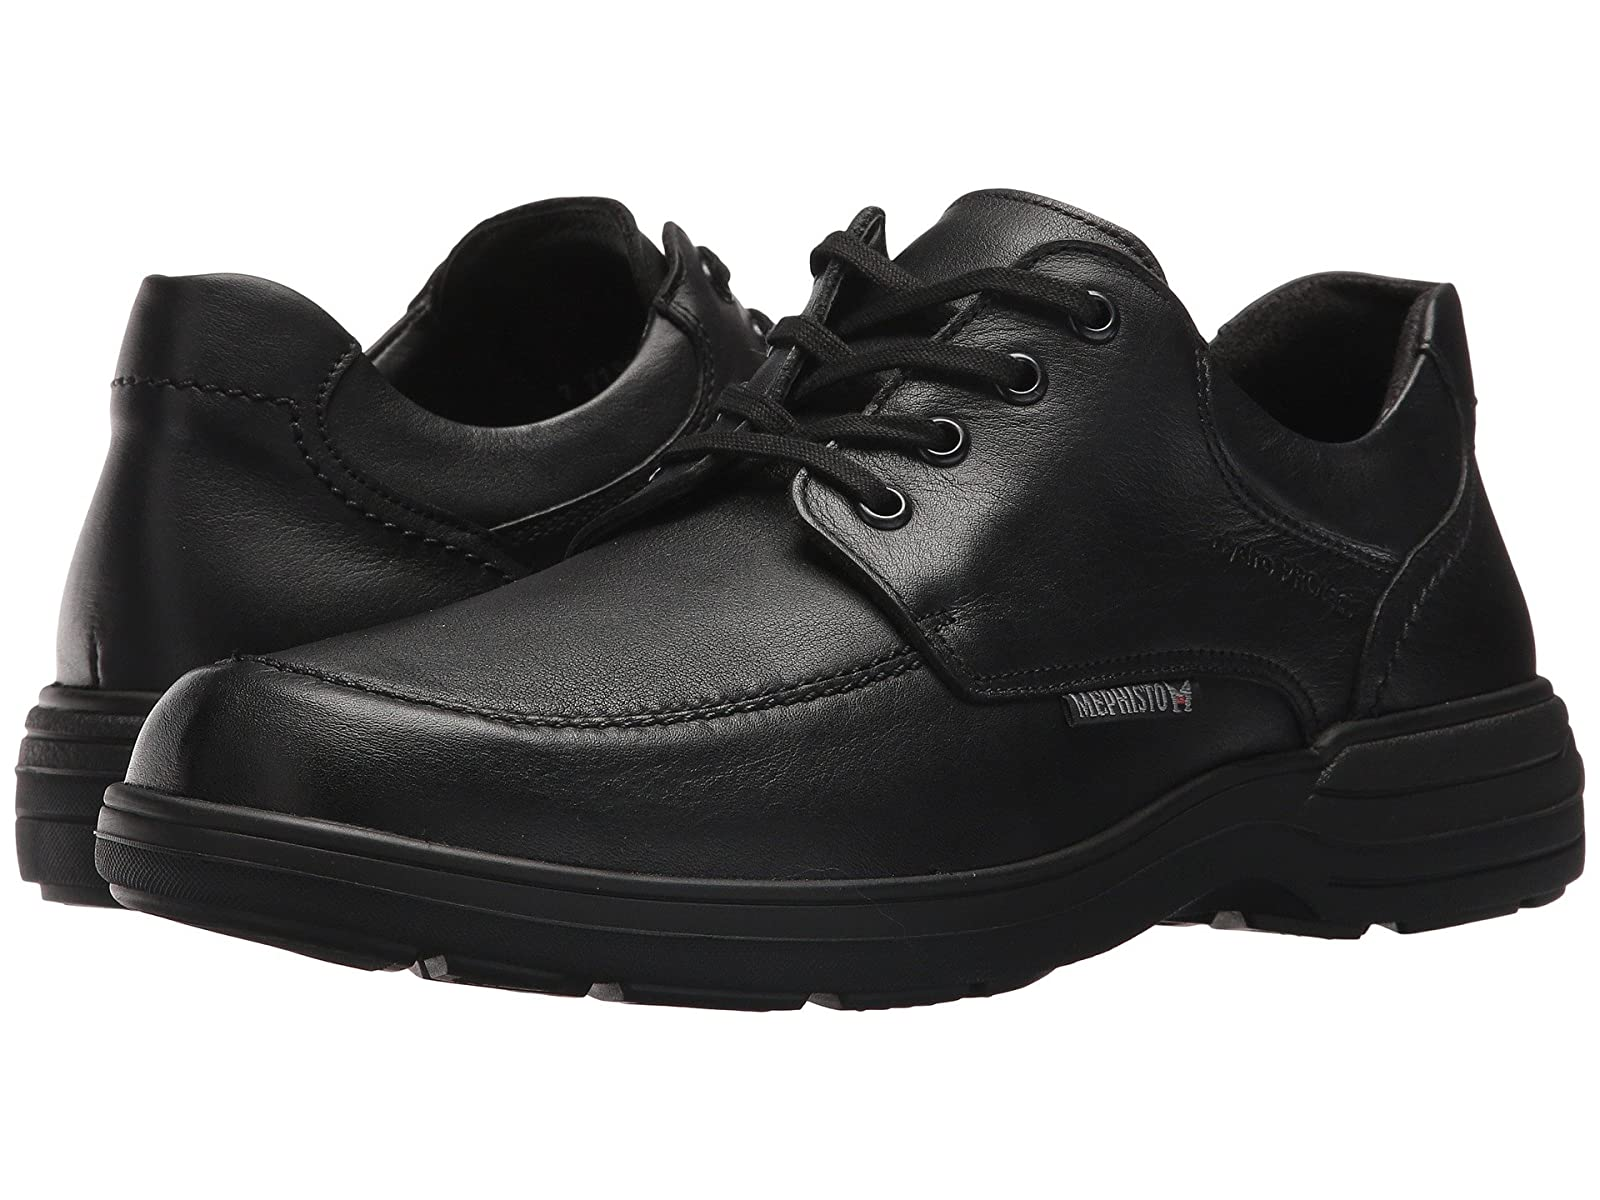 Mephisto DoukAtmospheric grades have affordable shoes